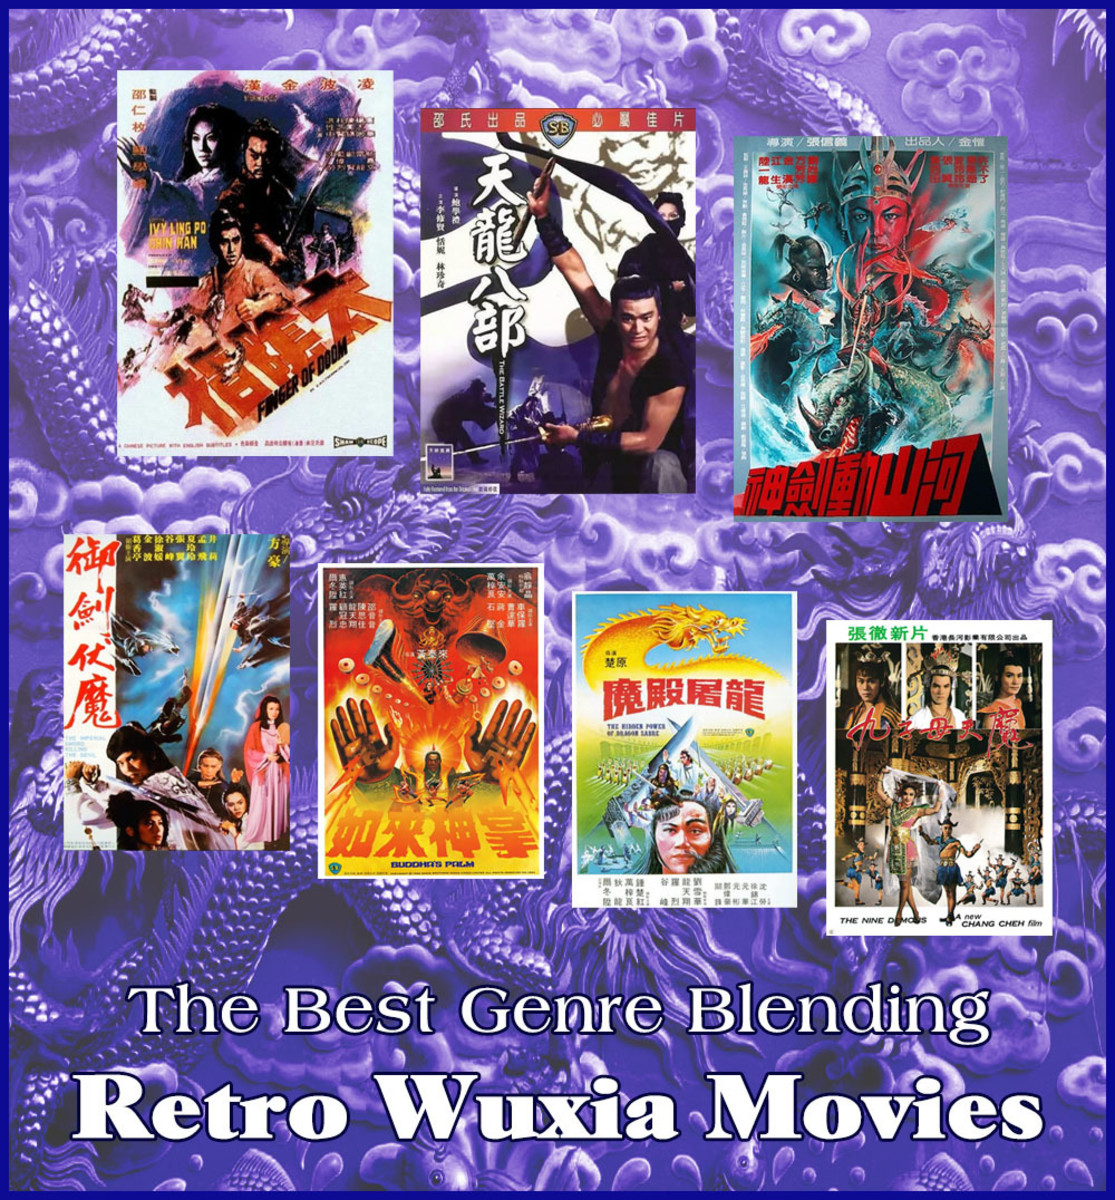 7 genre-blending retro Wuxia movies to watch for laughs and thrills.